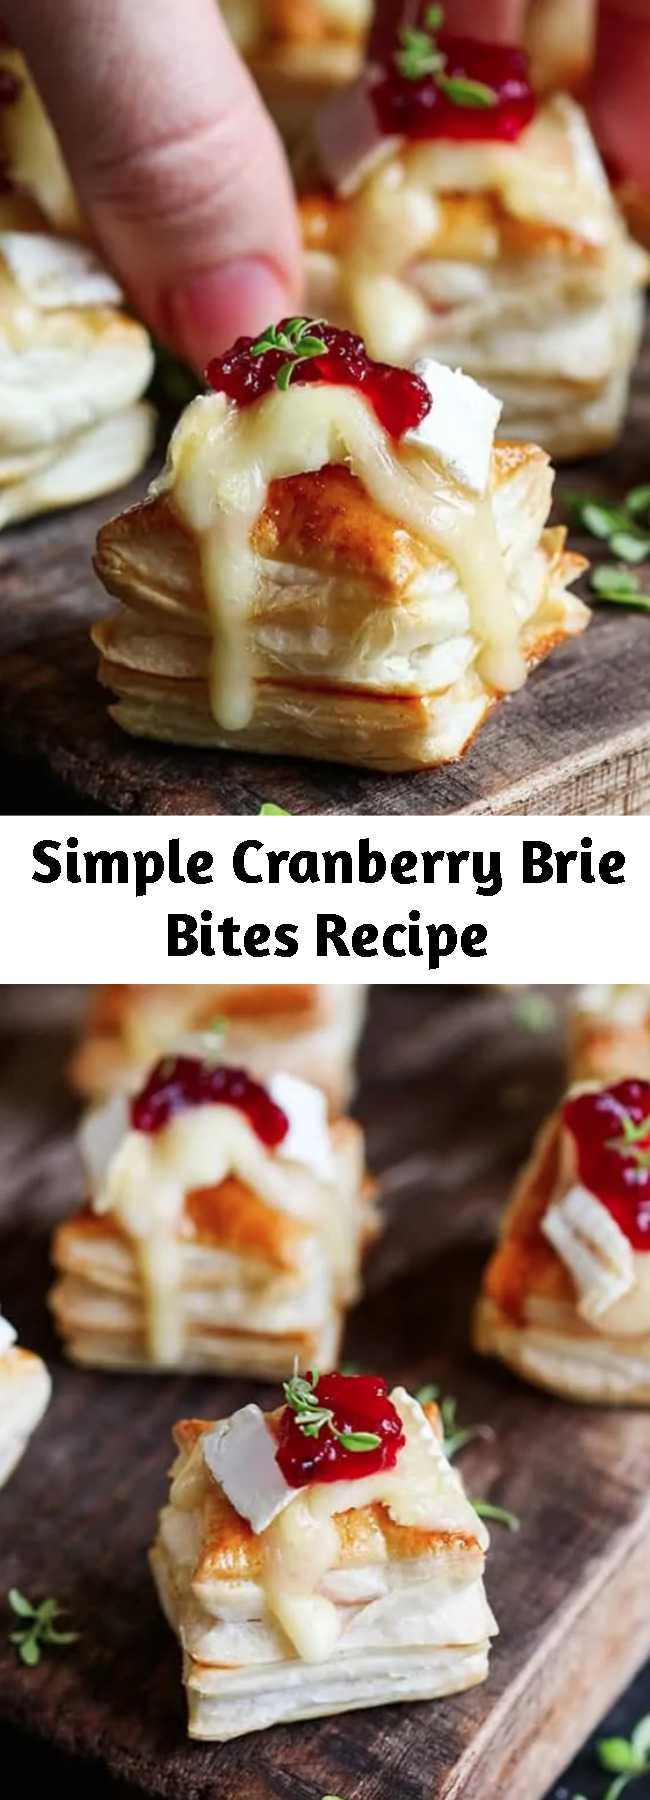 Simple Cranberry Brie Bites Recipe - The Cranberry Brie Bites are a simple appetizer or party snack. These Cranberry and Brie Bites always gets polished off in minutes! Super easy to make, Five ingredients in the oven and ready in 21 minutes! - that's my kind of recipe.